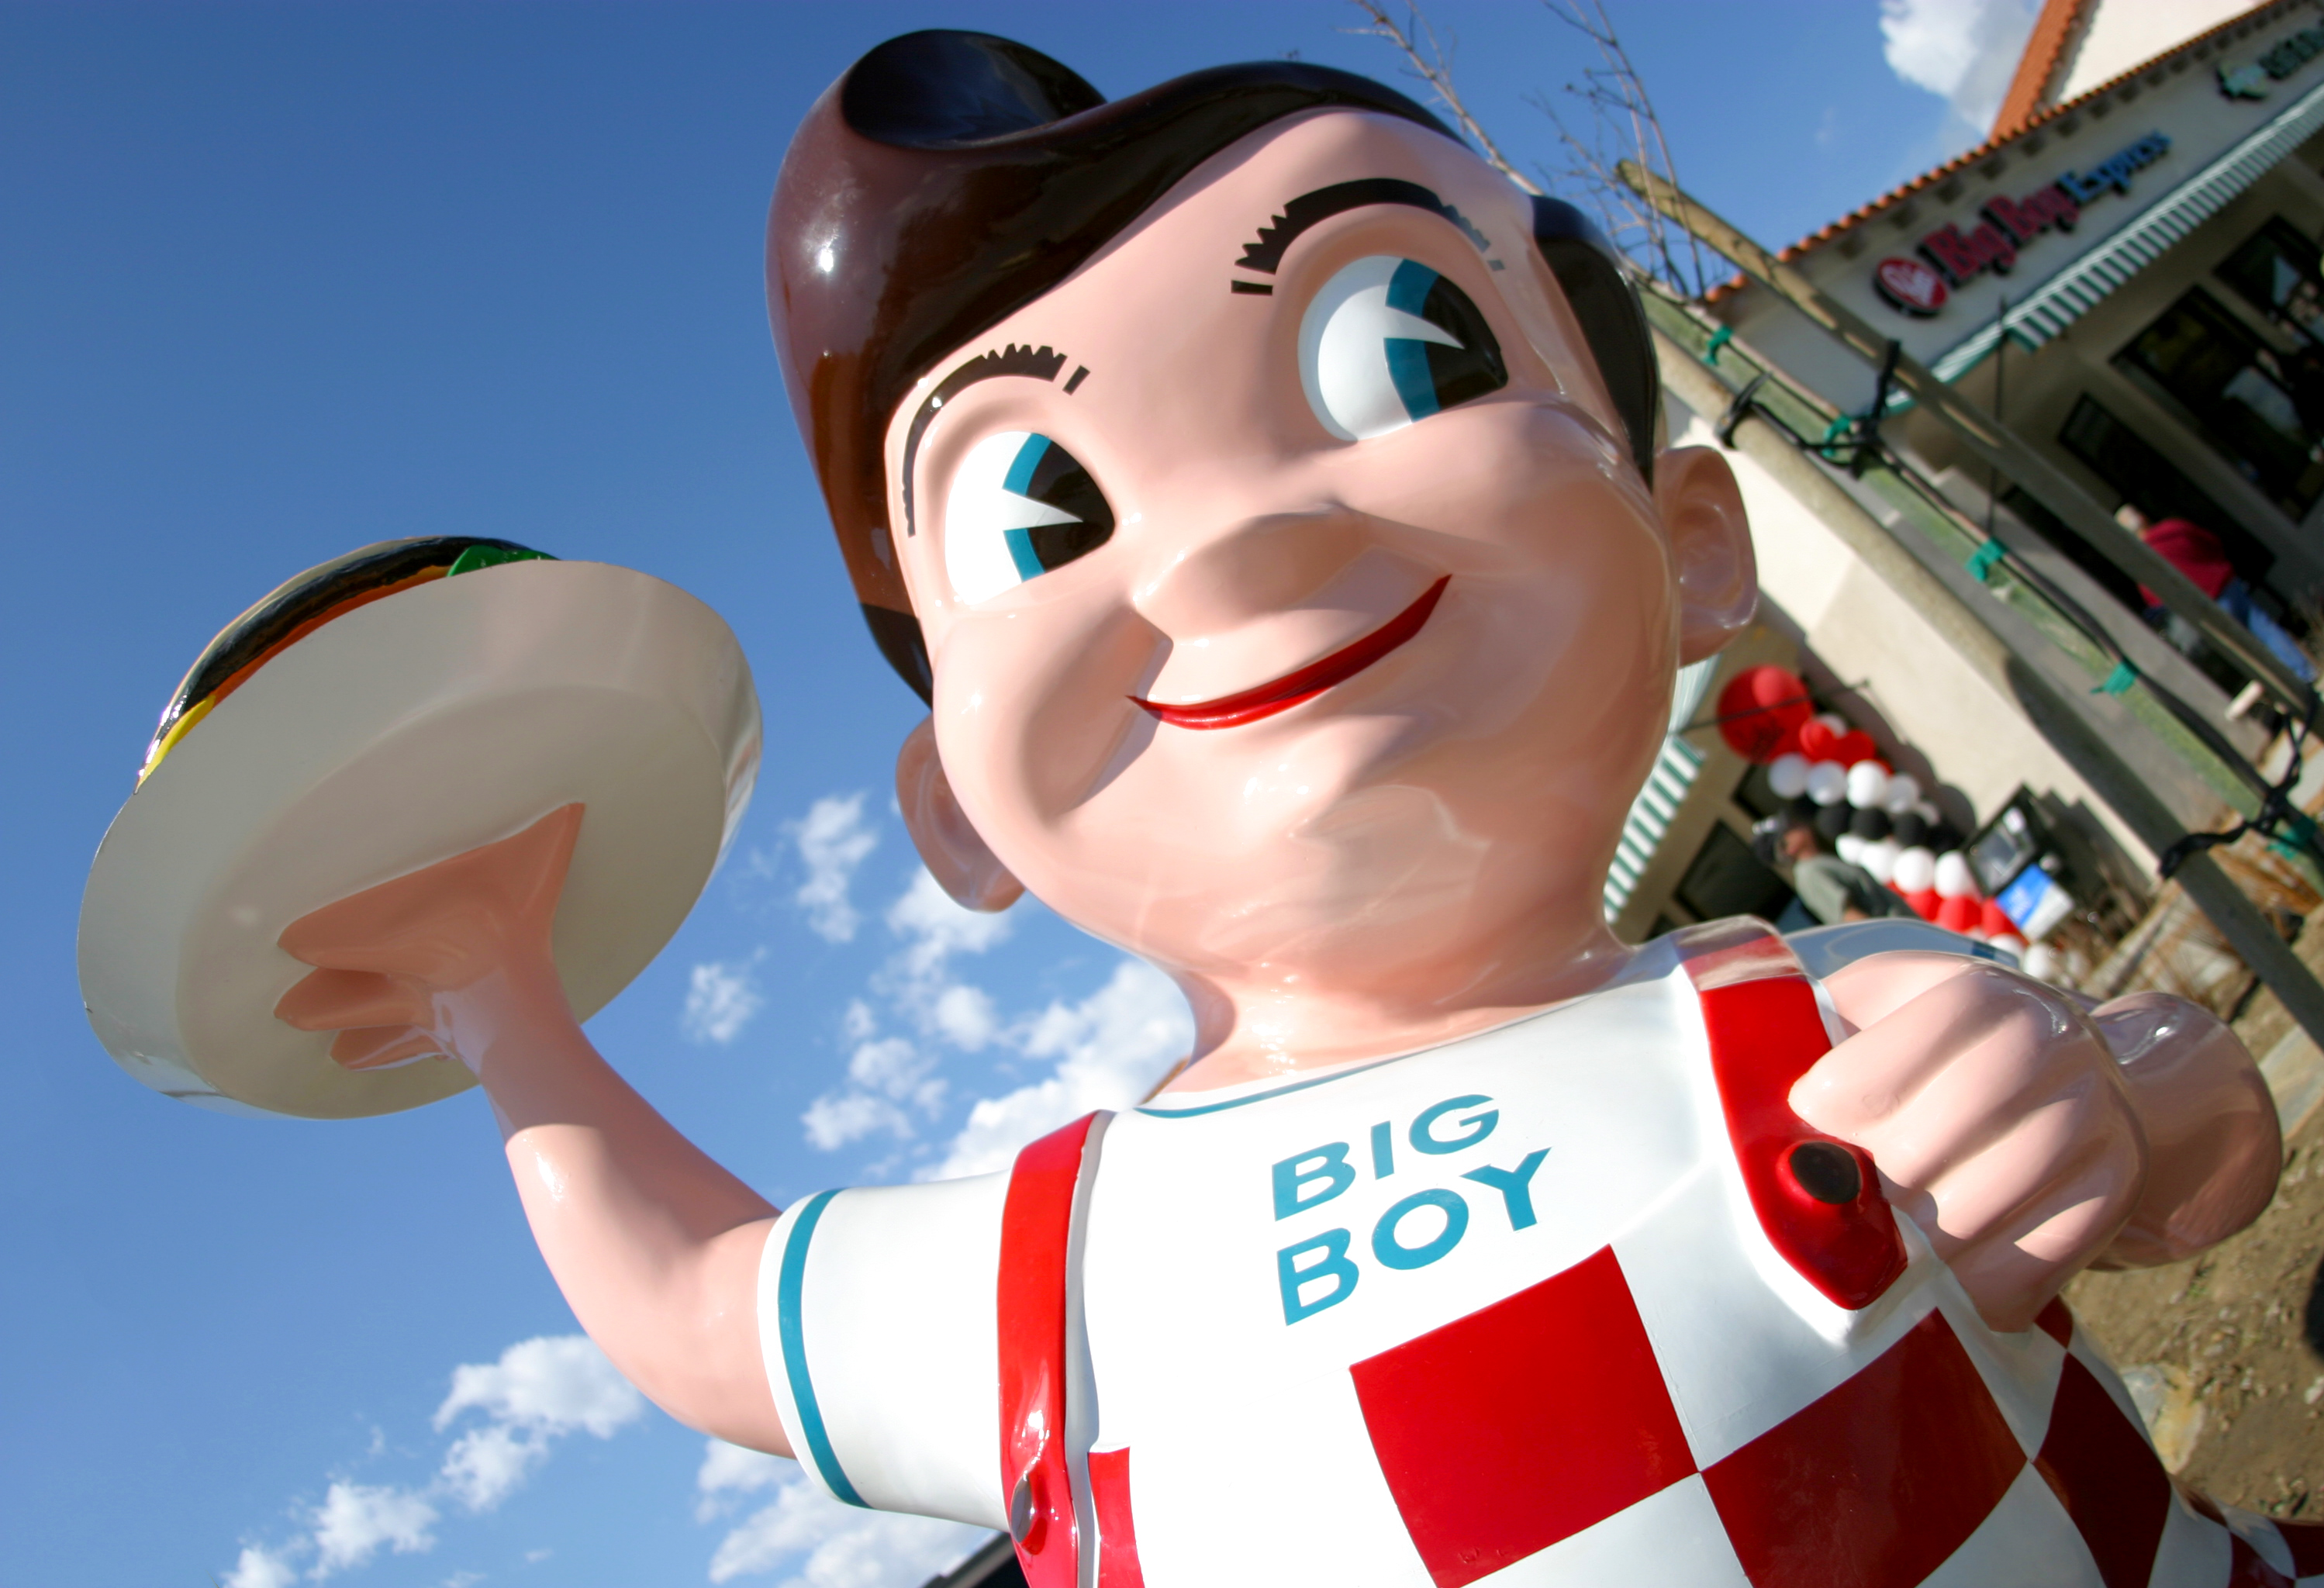 a massive big boy sculpture outside of a restaurant.. He has brown hair, big blue eyes, checkered overalls, and is holding a burger on a plate in one lifted hand.